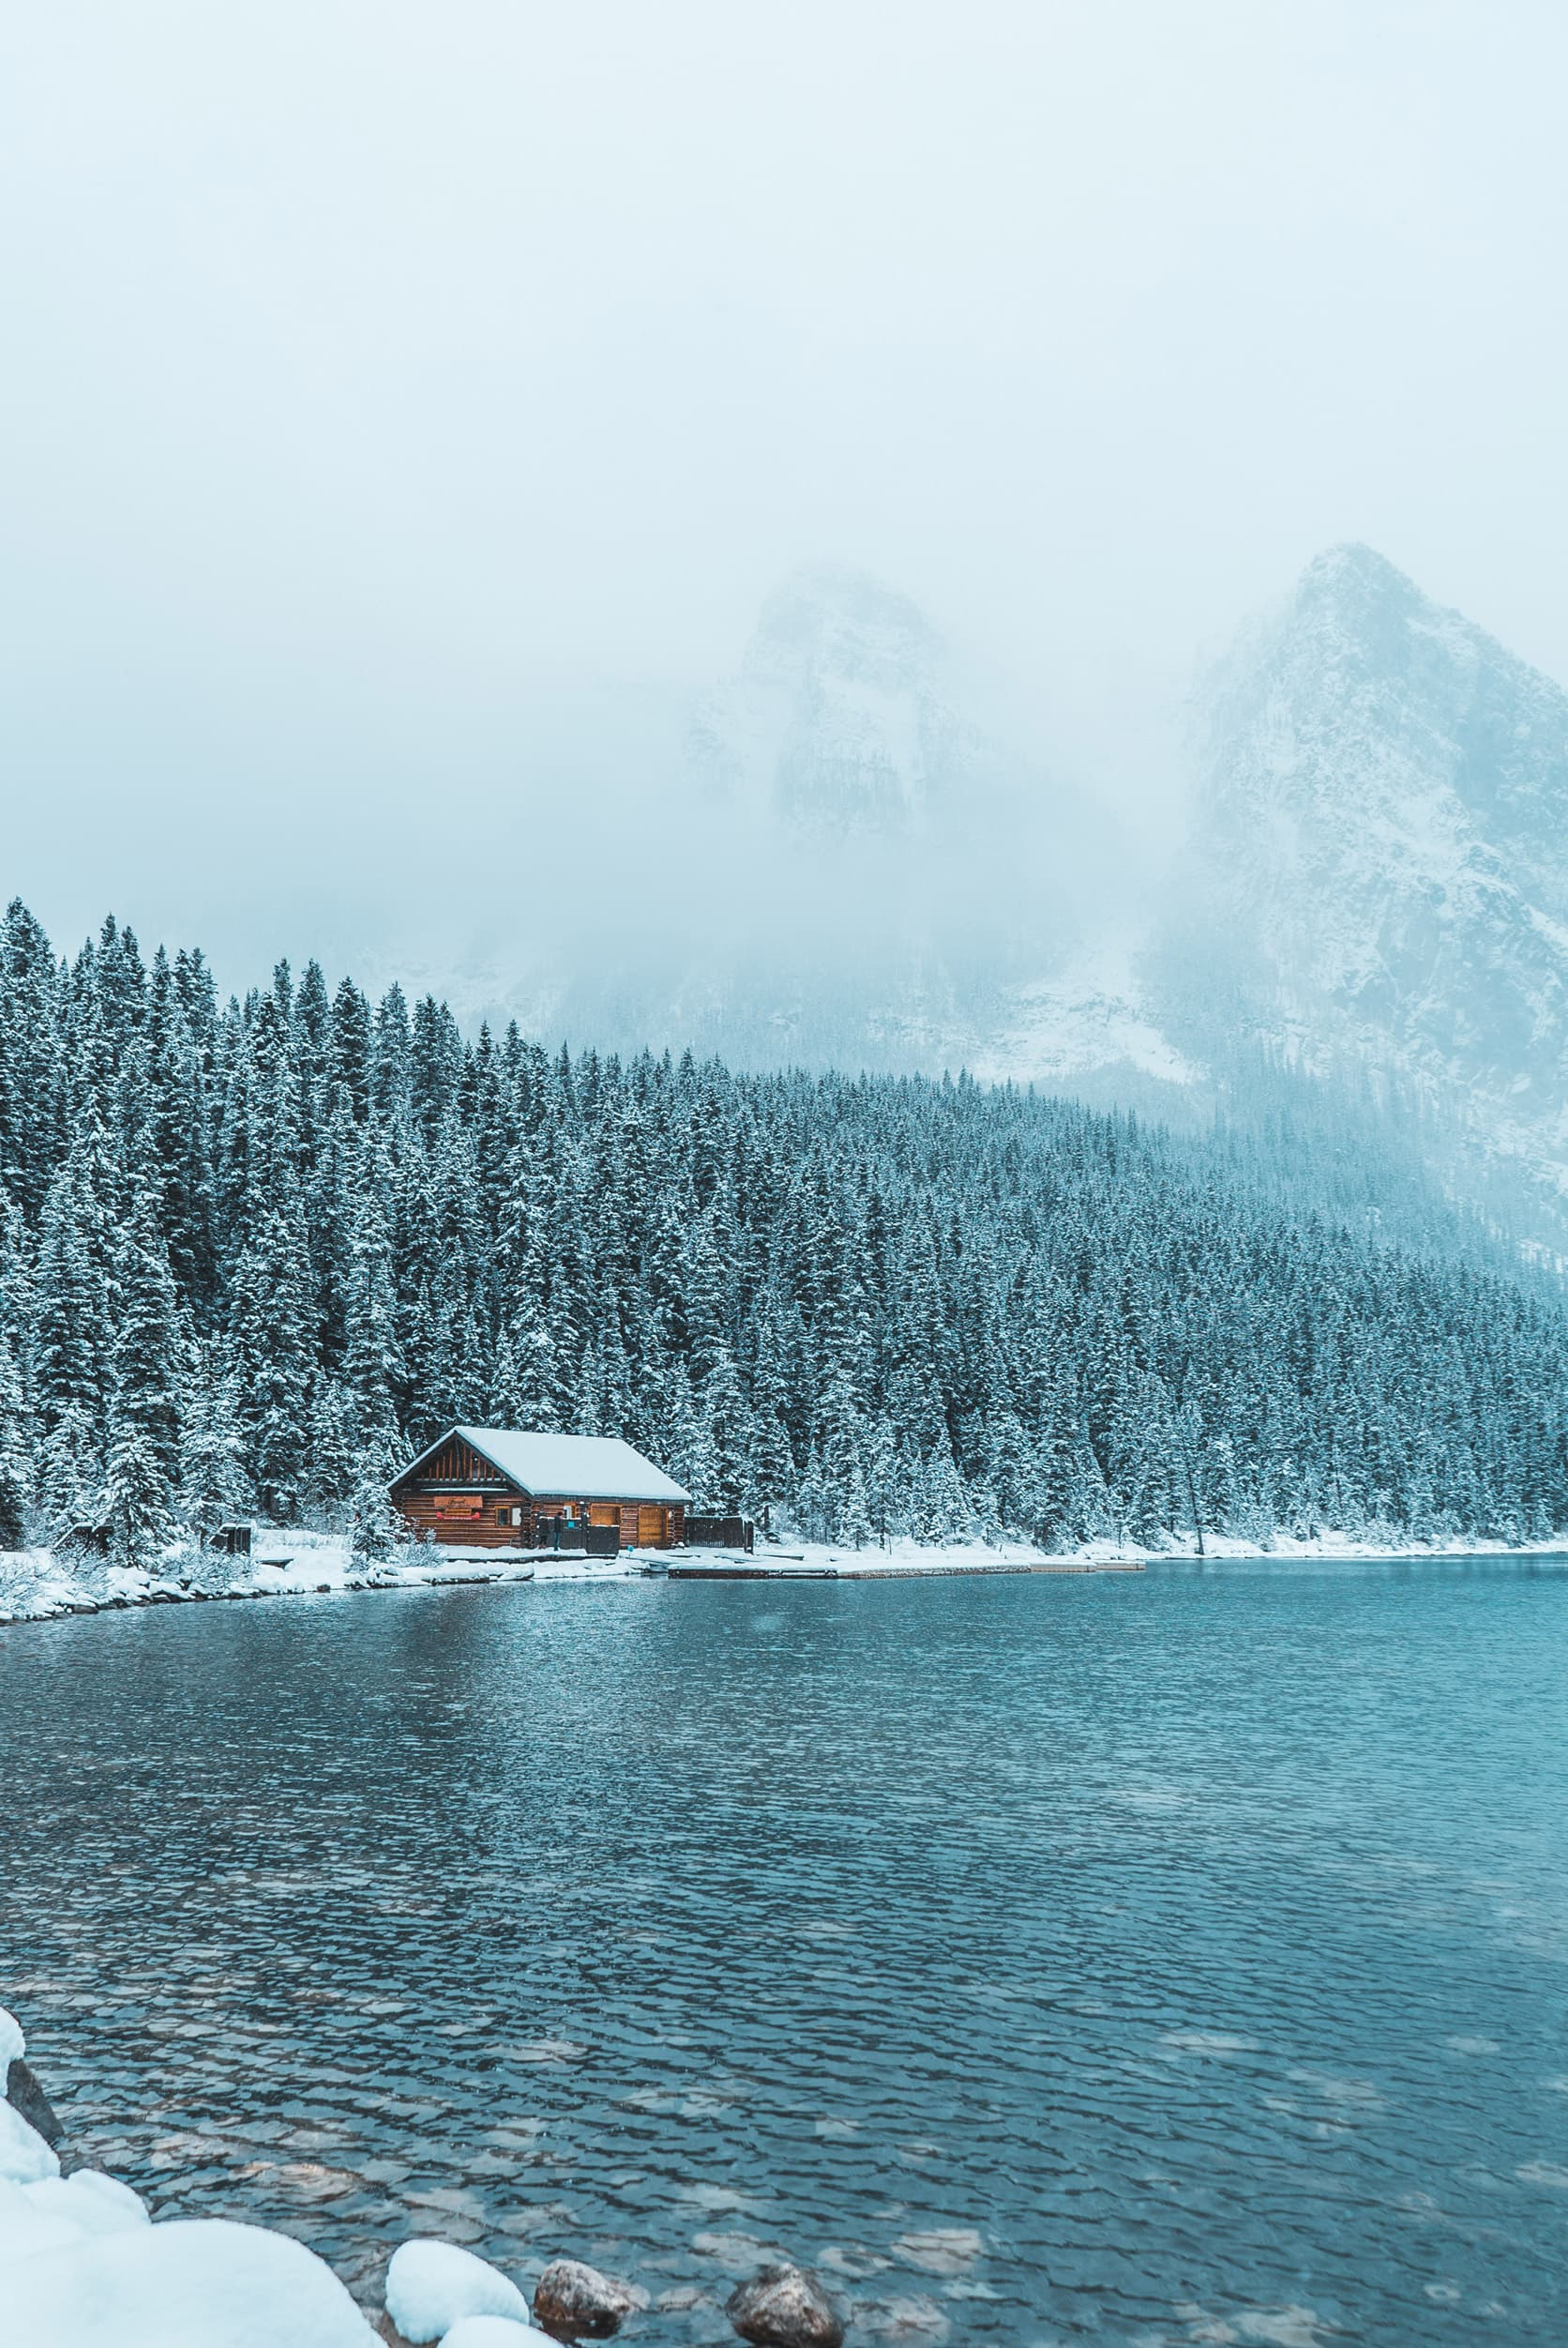 5 PLACES TO VISIT THIS WINTER